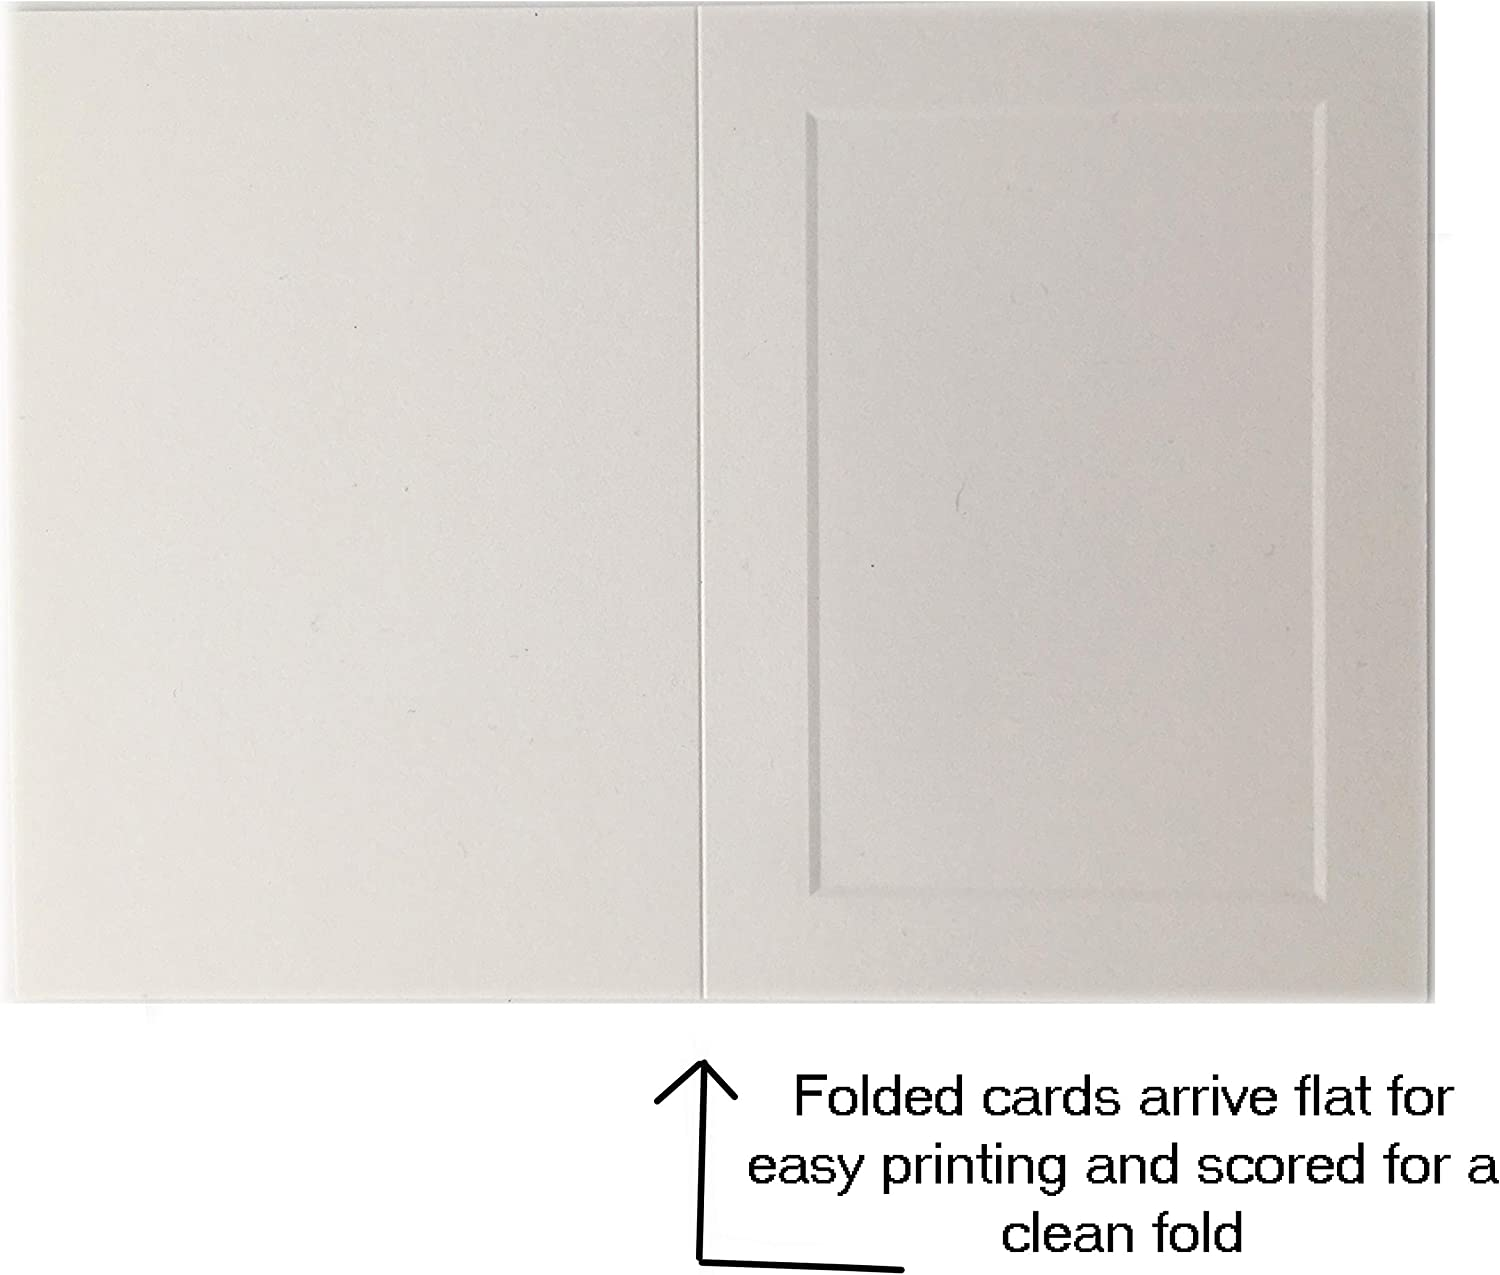 A2 carte blanche 400gsm 59 cm x 42 cm CRAFT HOBBY MONTAGE collage 25 To 250 feuilles